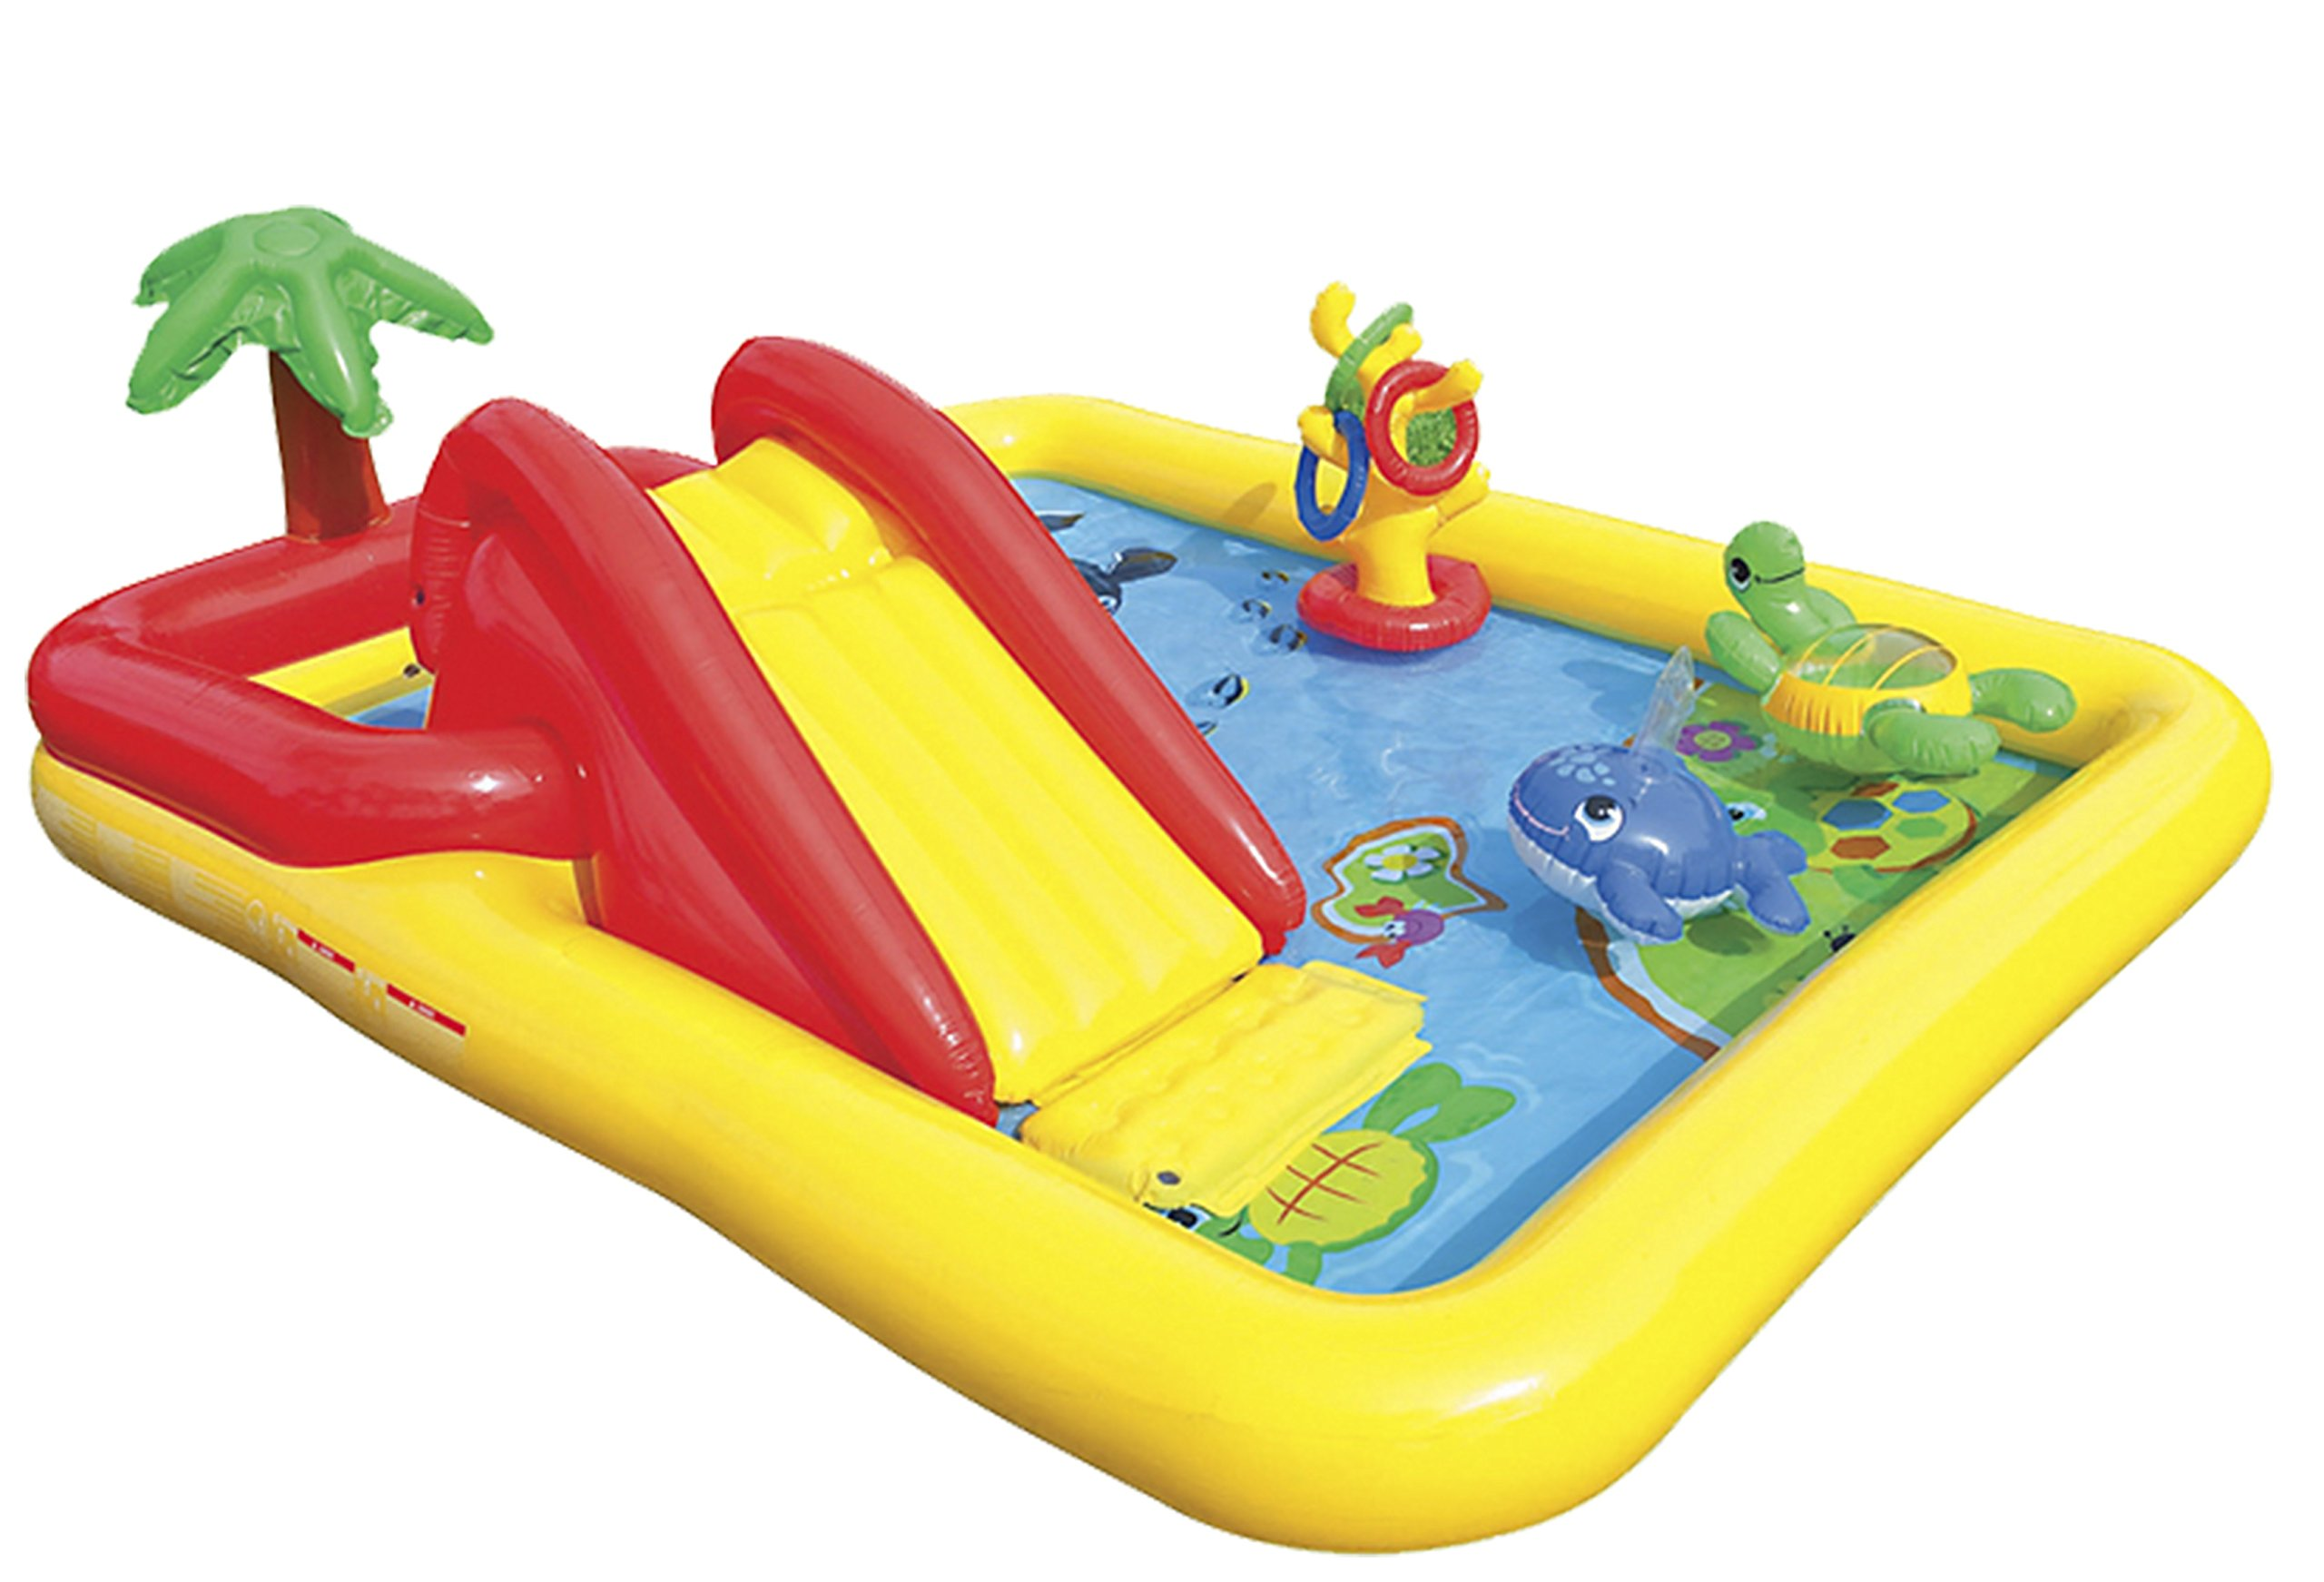 Intex Ocean Inflatable Play Center, 100'' X 77'' X 31'' Ages 2+